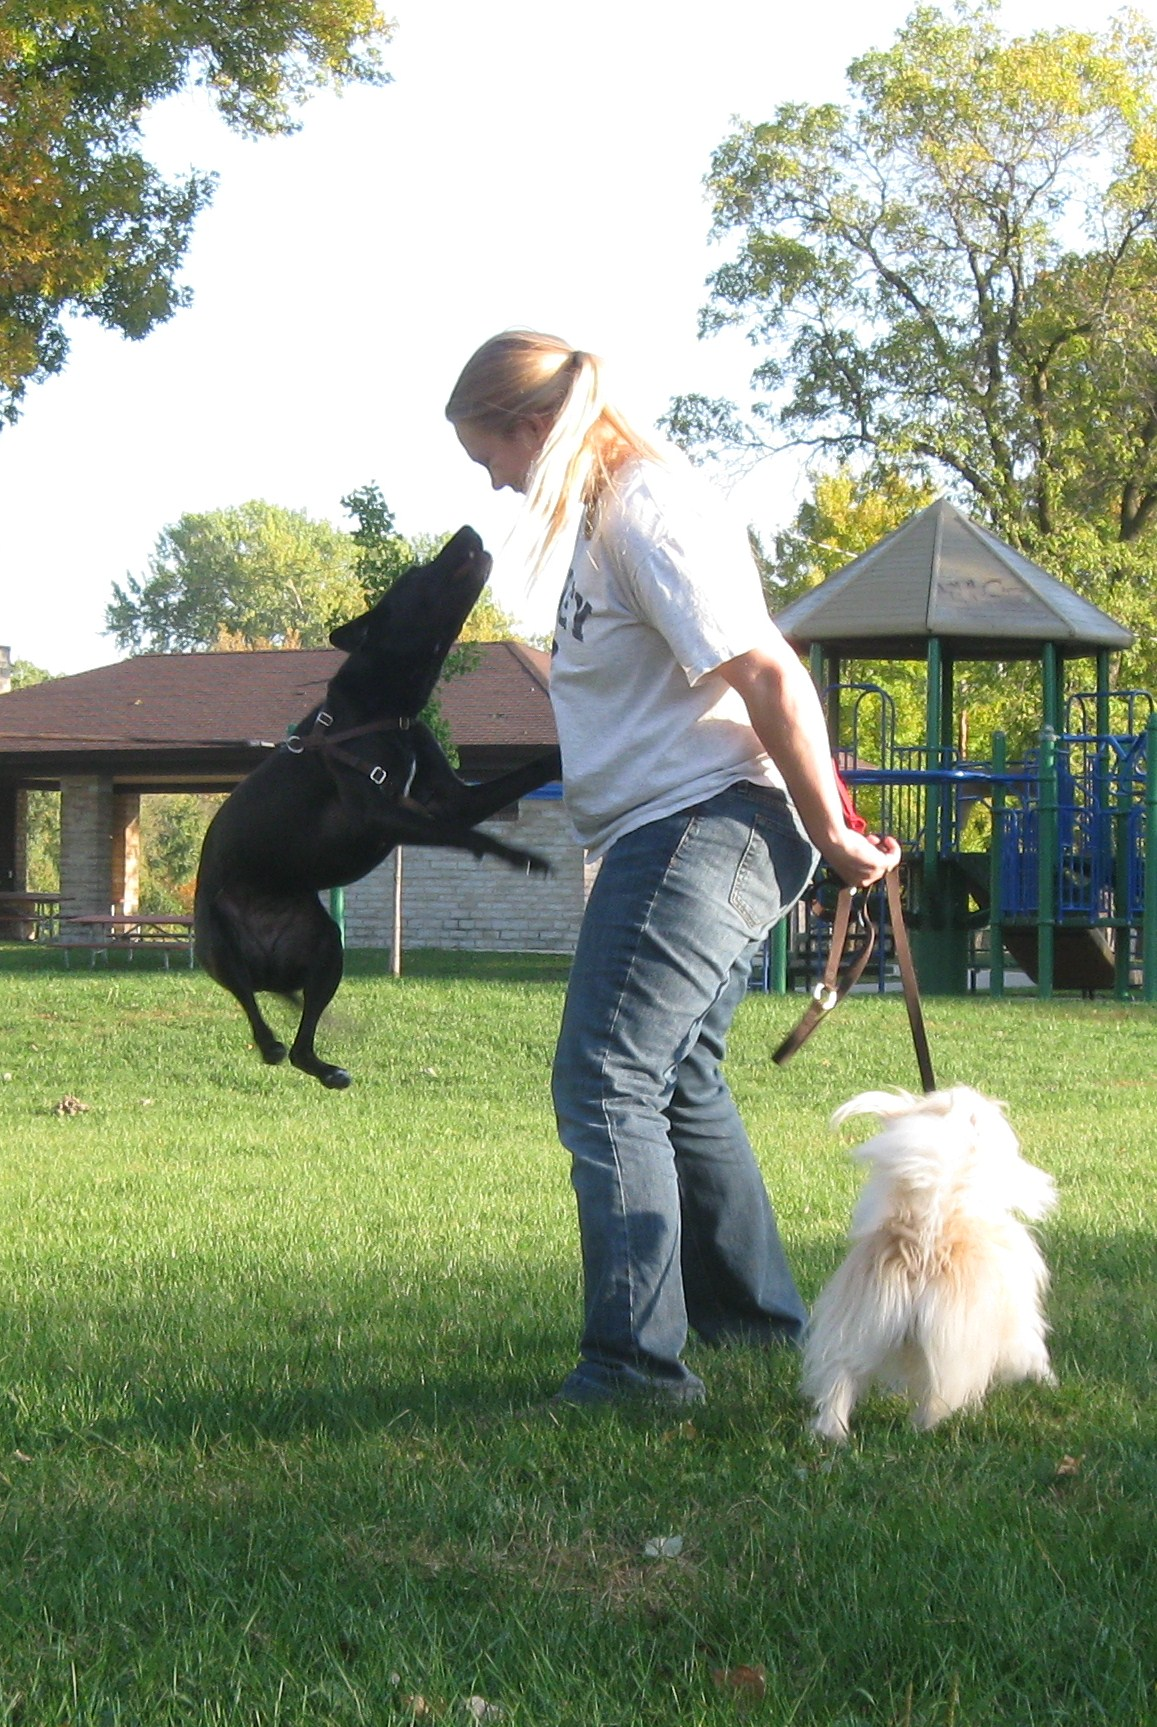 Canine freestyle: a selection of articles